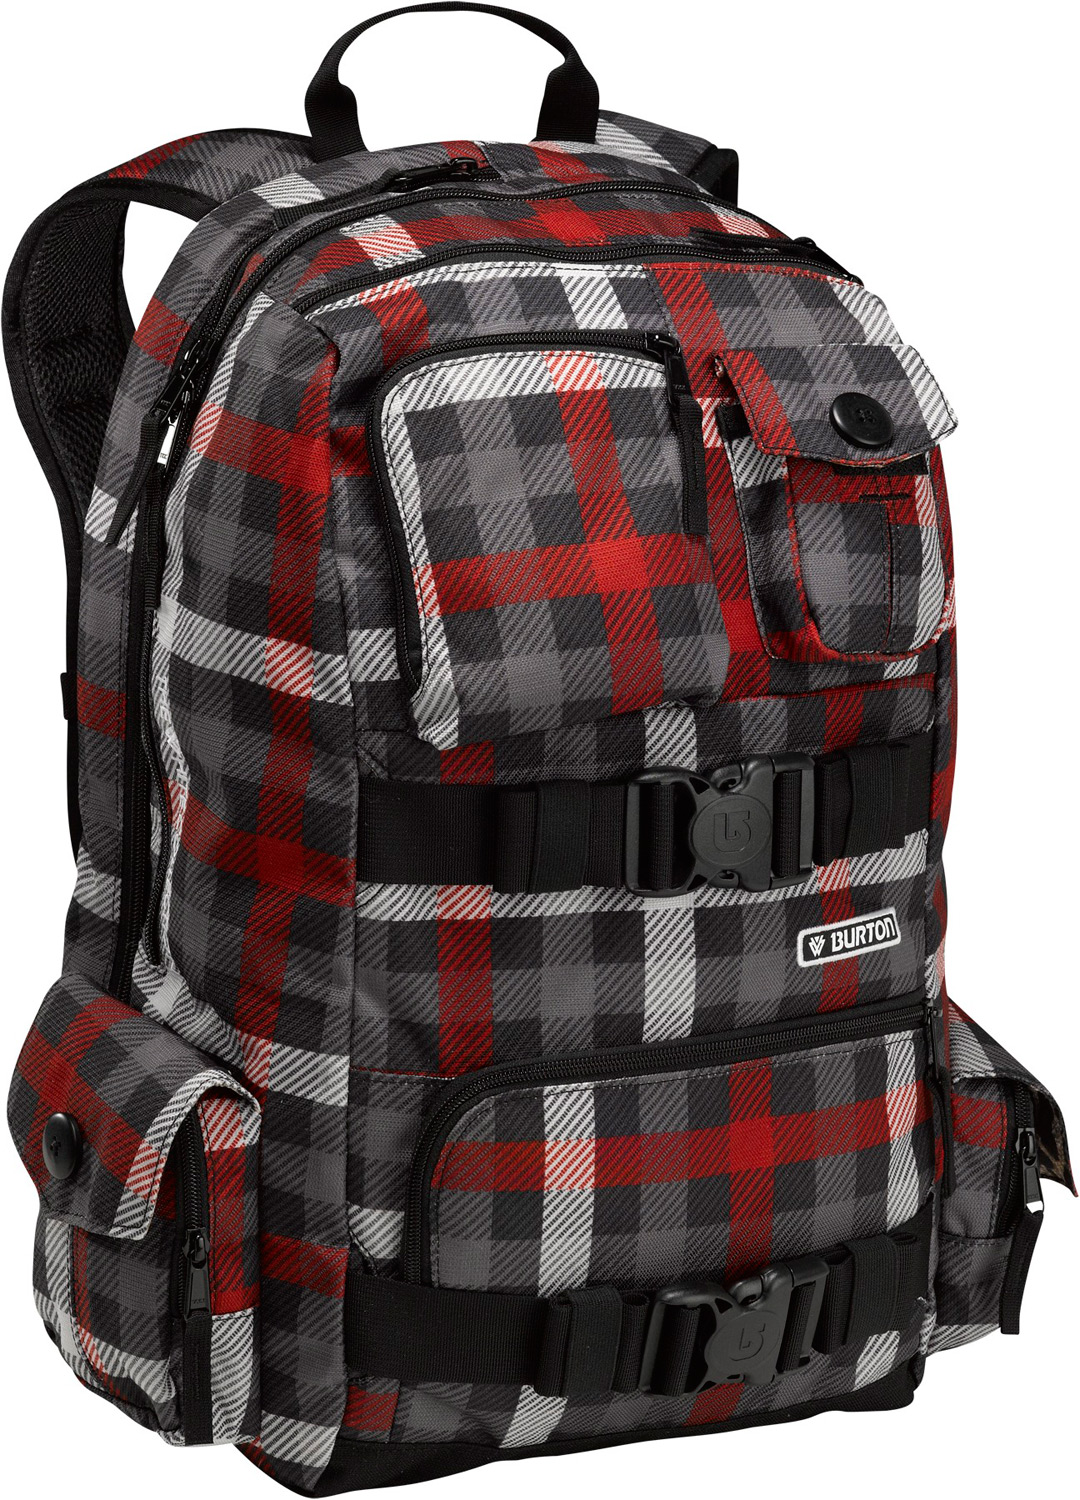 "Snowboard Shaun White has flown all around the globe for a decade plus now, and he's learned what goes into a good backpack. His signature White Collection Pack crams all his favorite features into a mega-versatile design that's just as good for taking to school as it is for hopping hemispheres a few times a year.Key Features of the Burton Shaun White SS Backpack: Spacious main compartment can hold all the essentials for a day with the crew or a chill day on campus. Padded laptop sleeve with an easy to access side entry. Dimensions: 15"" x 11"" x 2"". Extra front storage compartment allows for easy access to the necessities. Two extra side compartments for added storage options. Oversized studio headphone storage pocket. Capacity: 26L - $62.95"